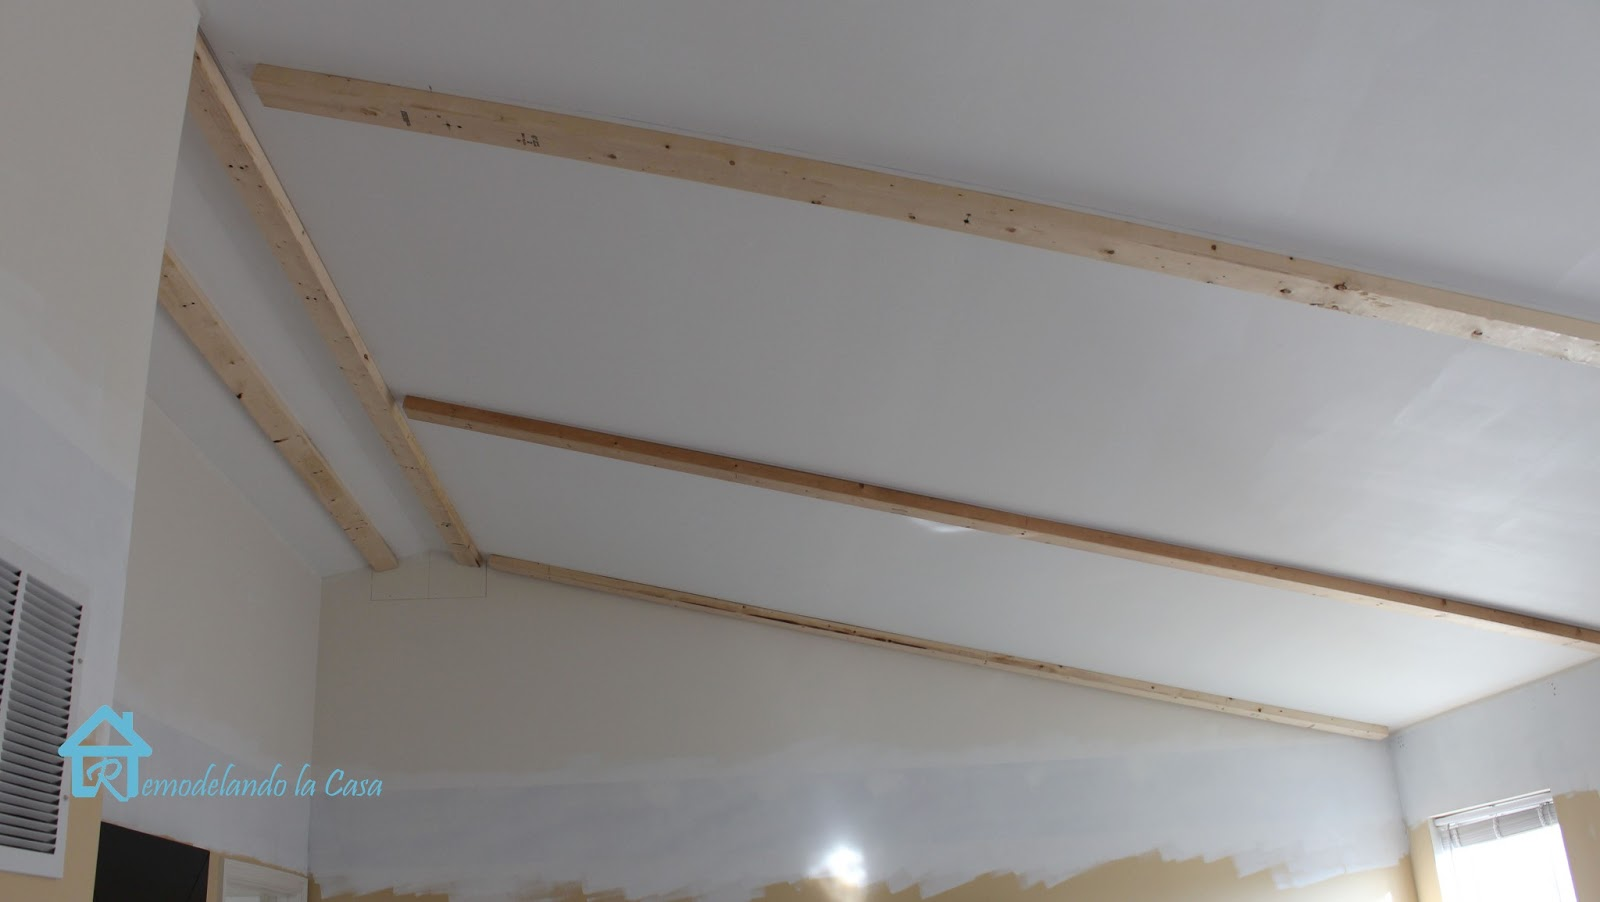 At Home Depot Styrofoam Beams ~ False wood beams on ceiling pictures to pin pinterest